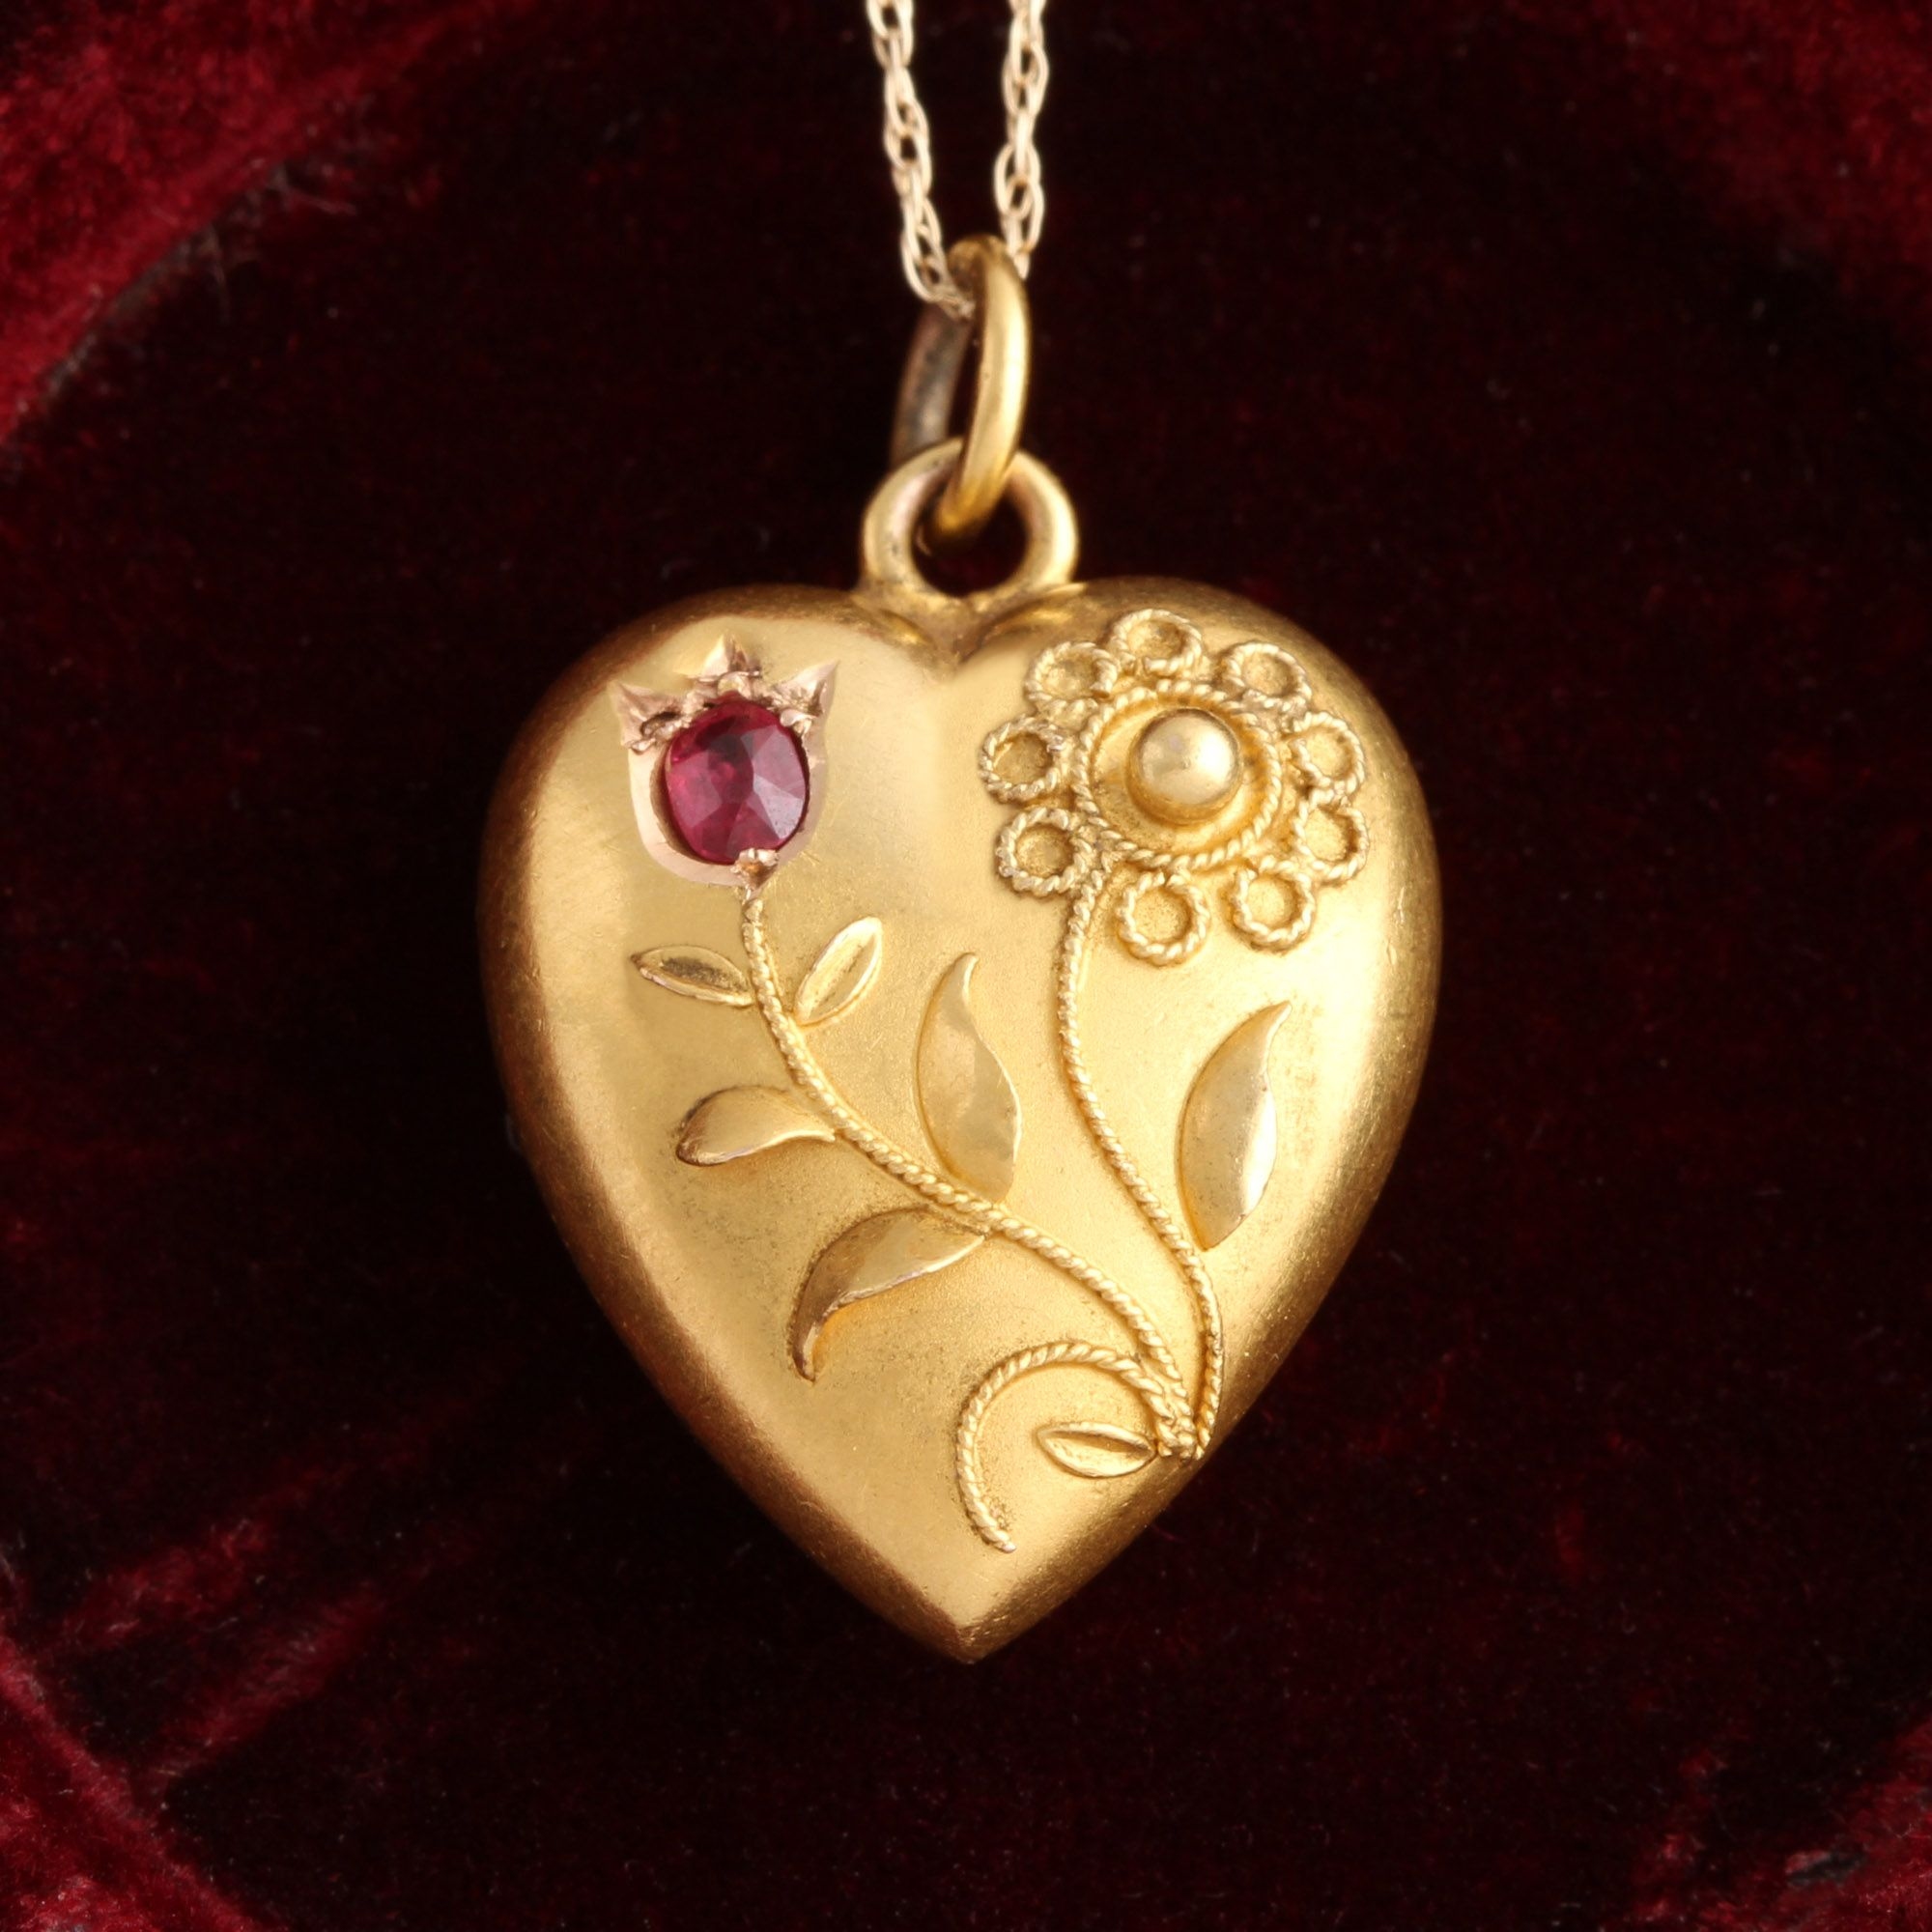 Edwardian Ruby and Flower Heart Necklace